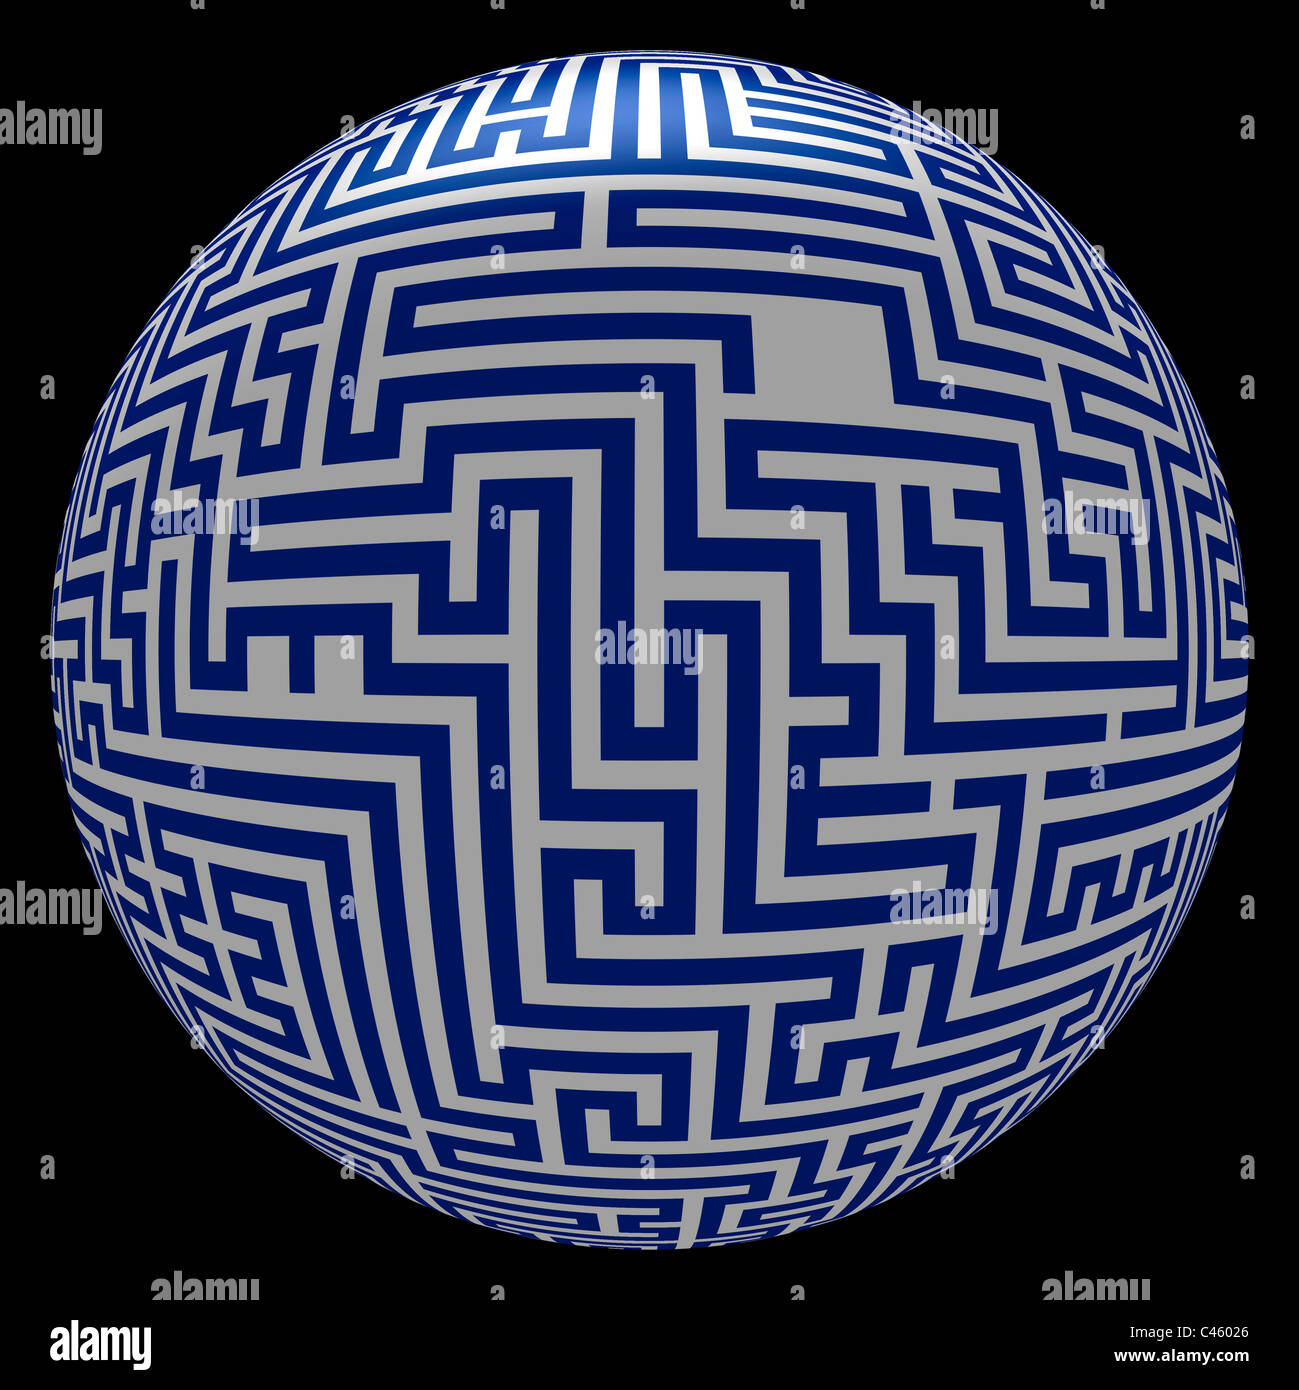 art work and illustration - maze with ending point - Stock Image